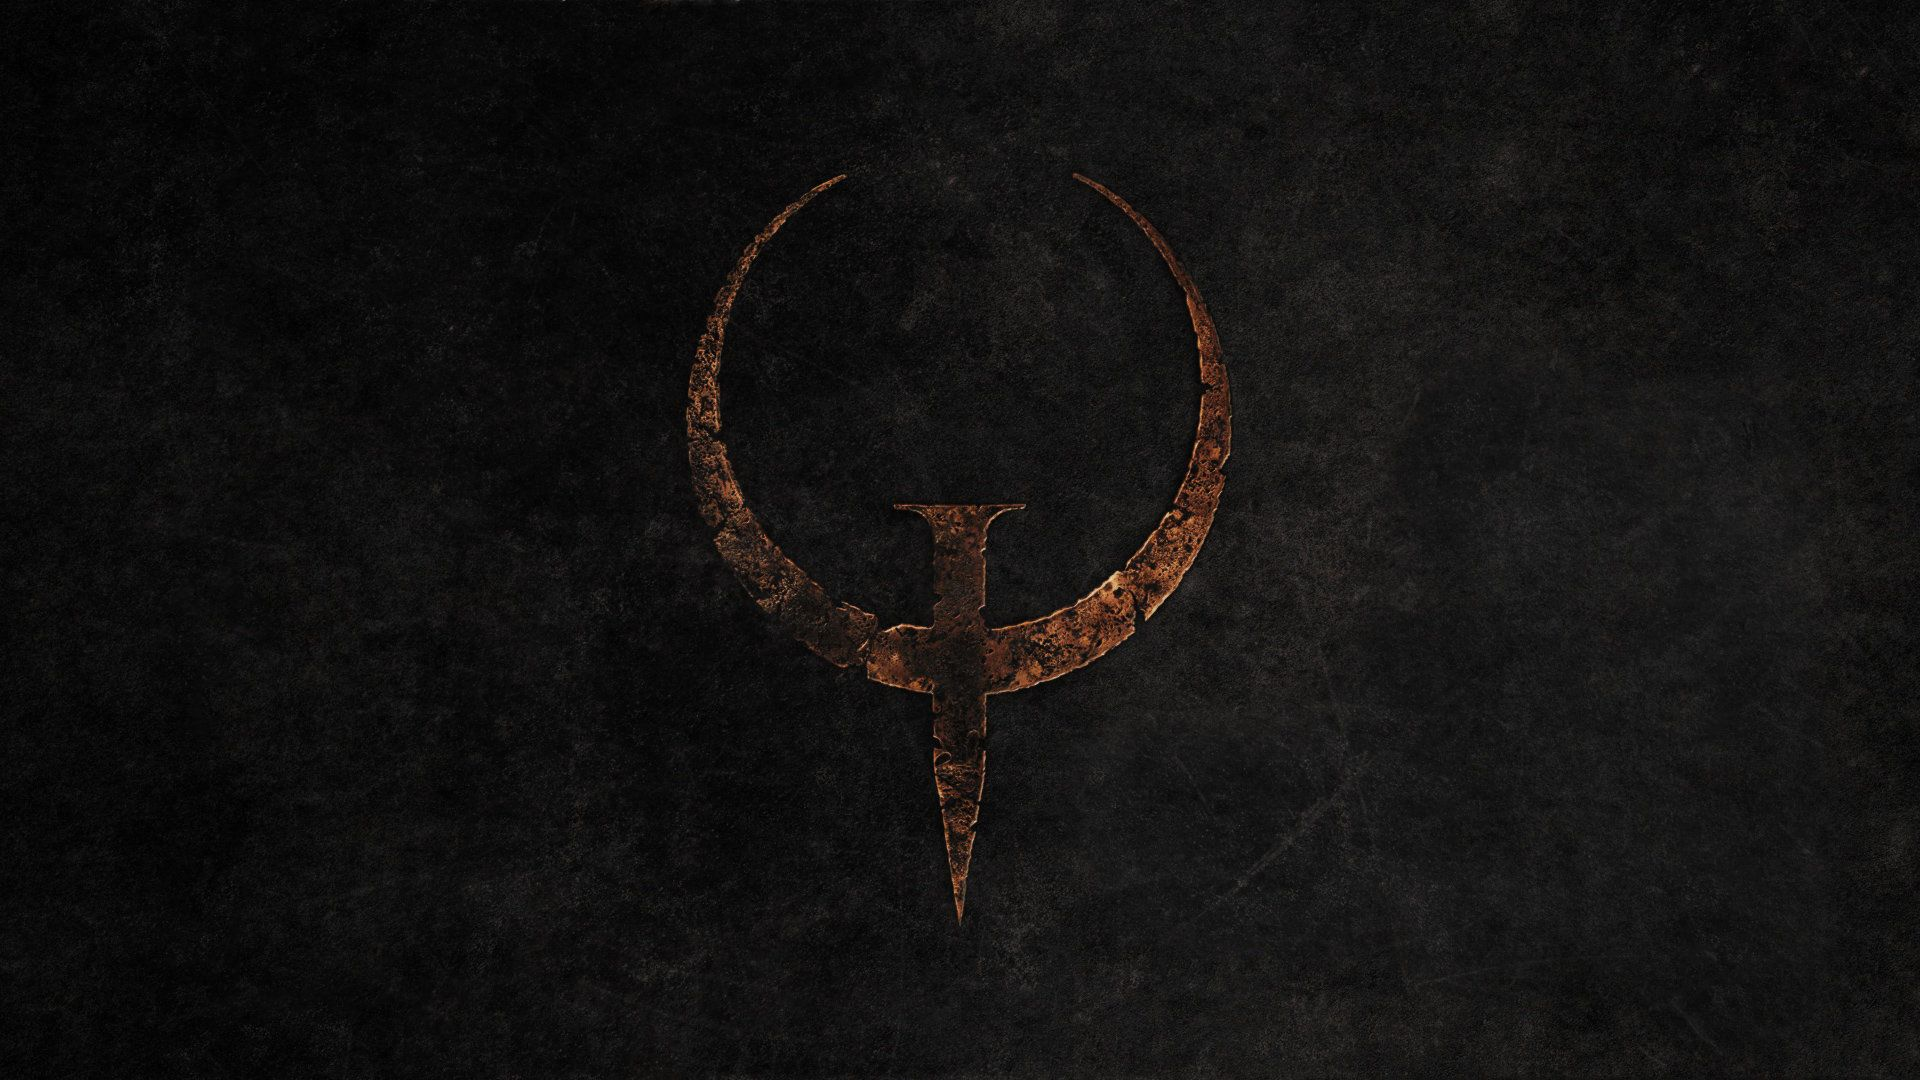 Quake Image Gallery List View